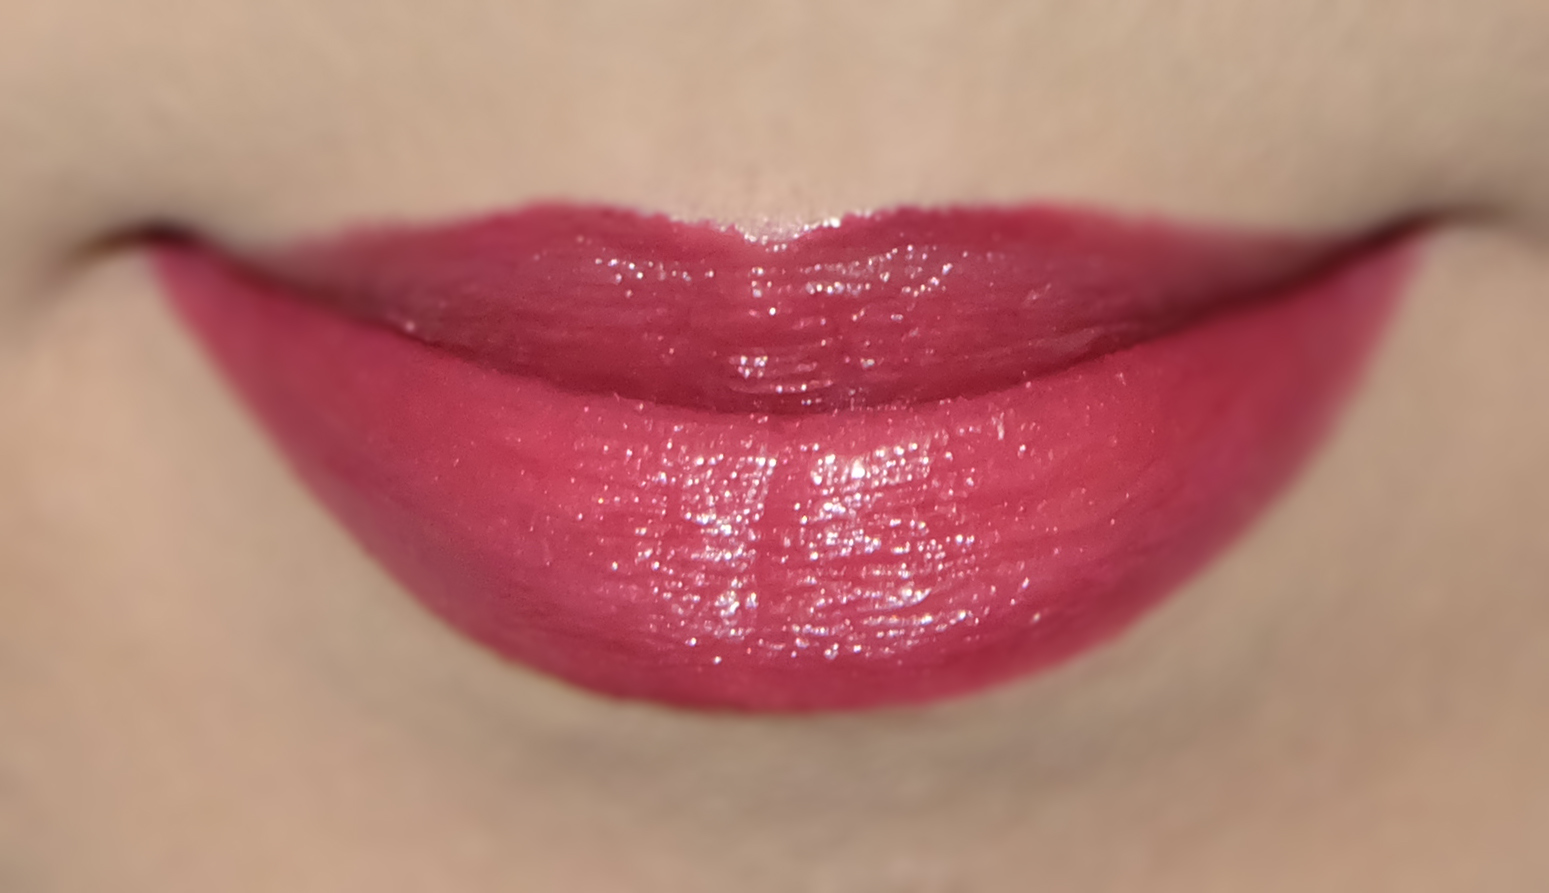 swatch product review best lip shimmer burt's bees